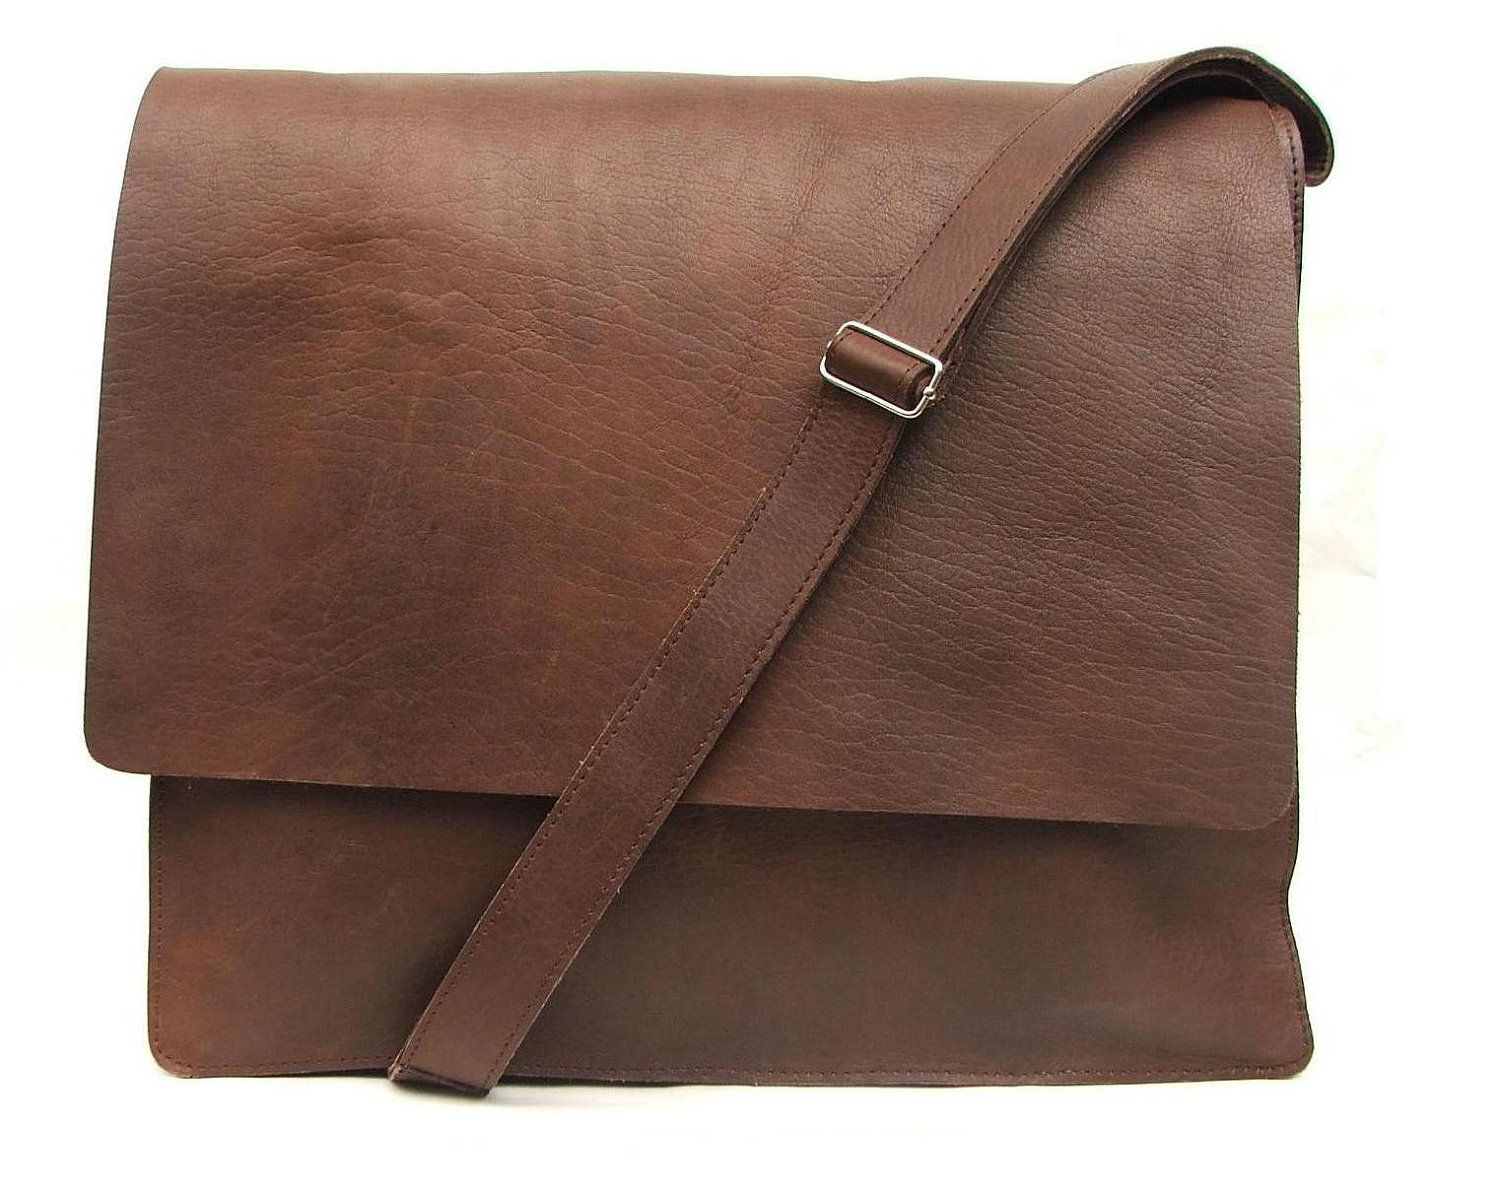 Mens Leather bag Mens Messenger bag Brown Leather laptop leather ...